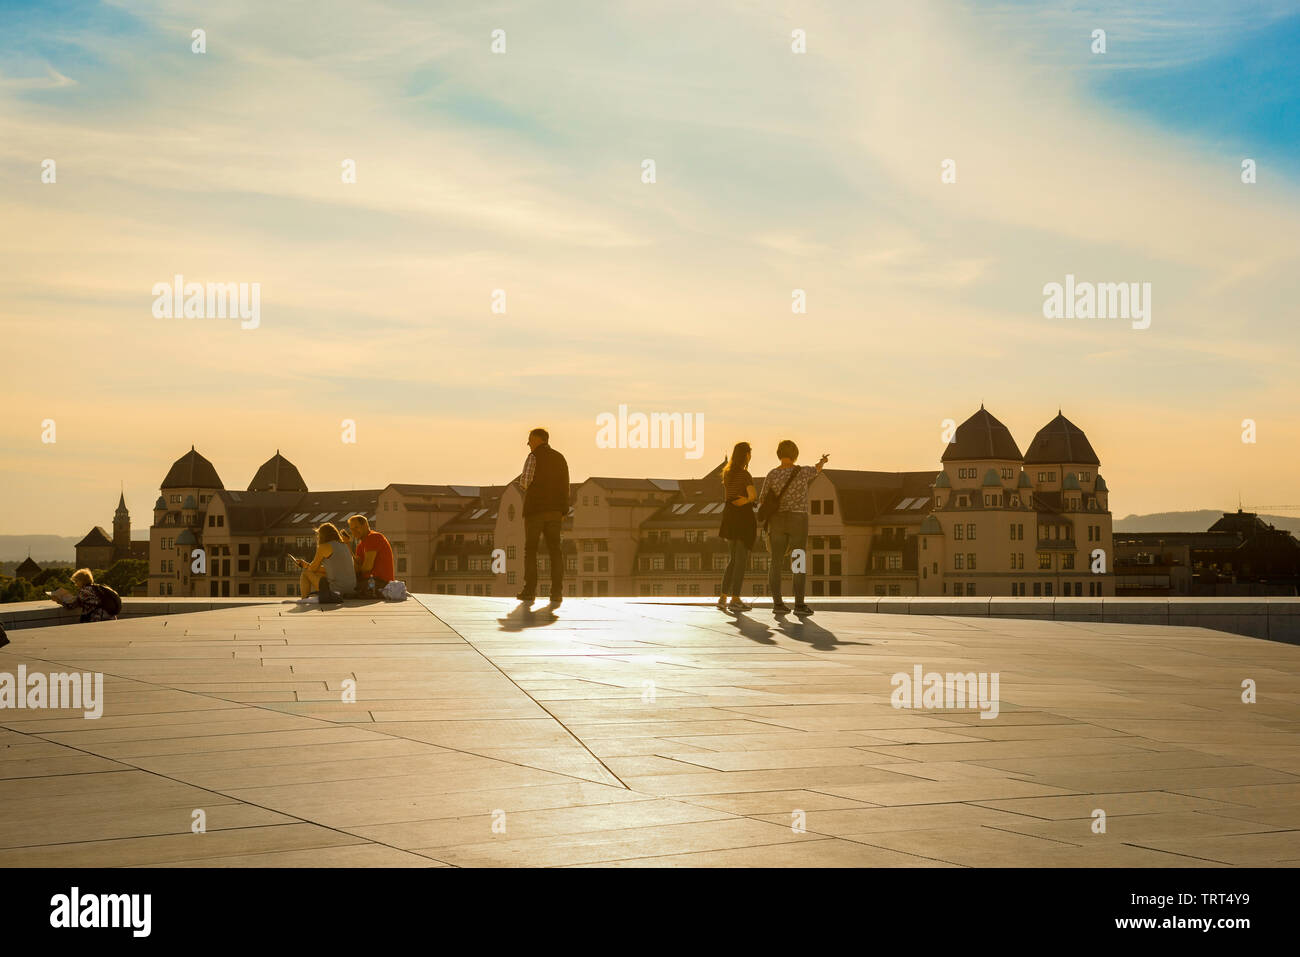 Oslo Opera House, view on a summer evening of tourists on the roof of the Oslo Opera House (Operahuset) looking across the city, Norway. Stock Photo